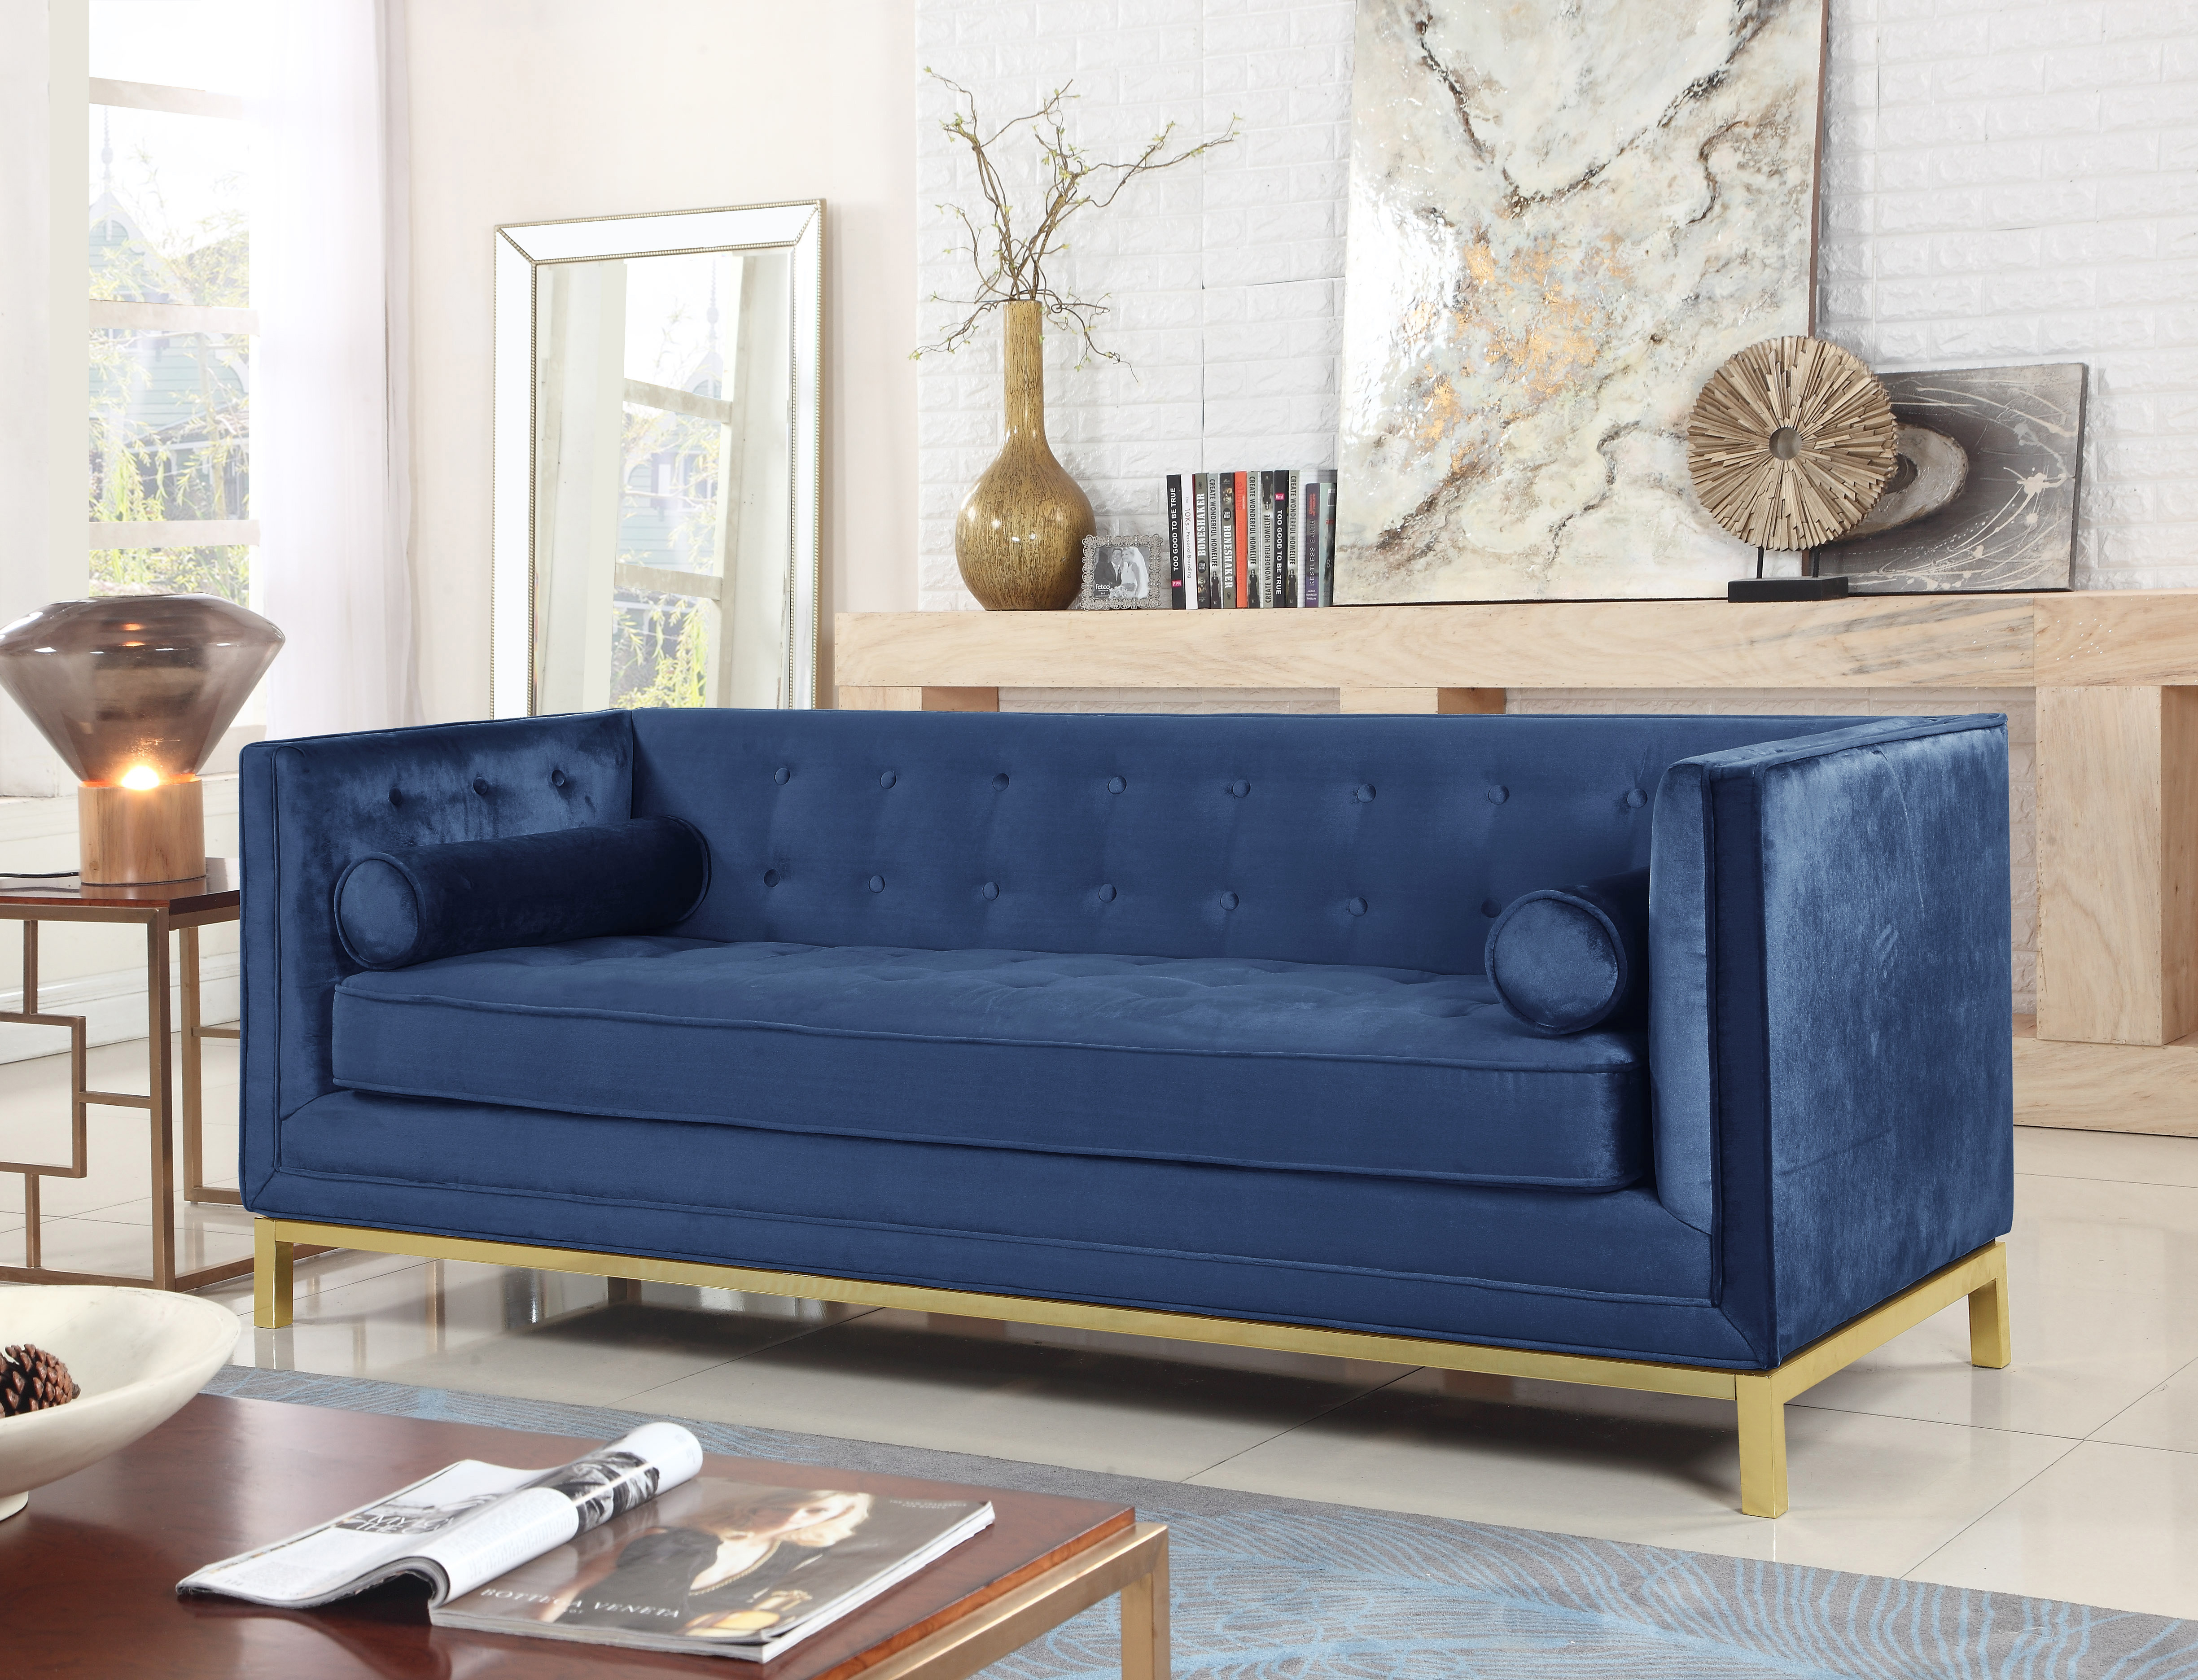 Iconic Club Sofa Tufted Velvet Plush Cushion Brass Ed Stainless Steel Brushed Metal F Vigan